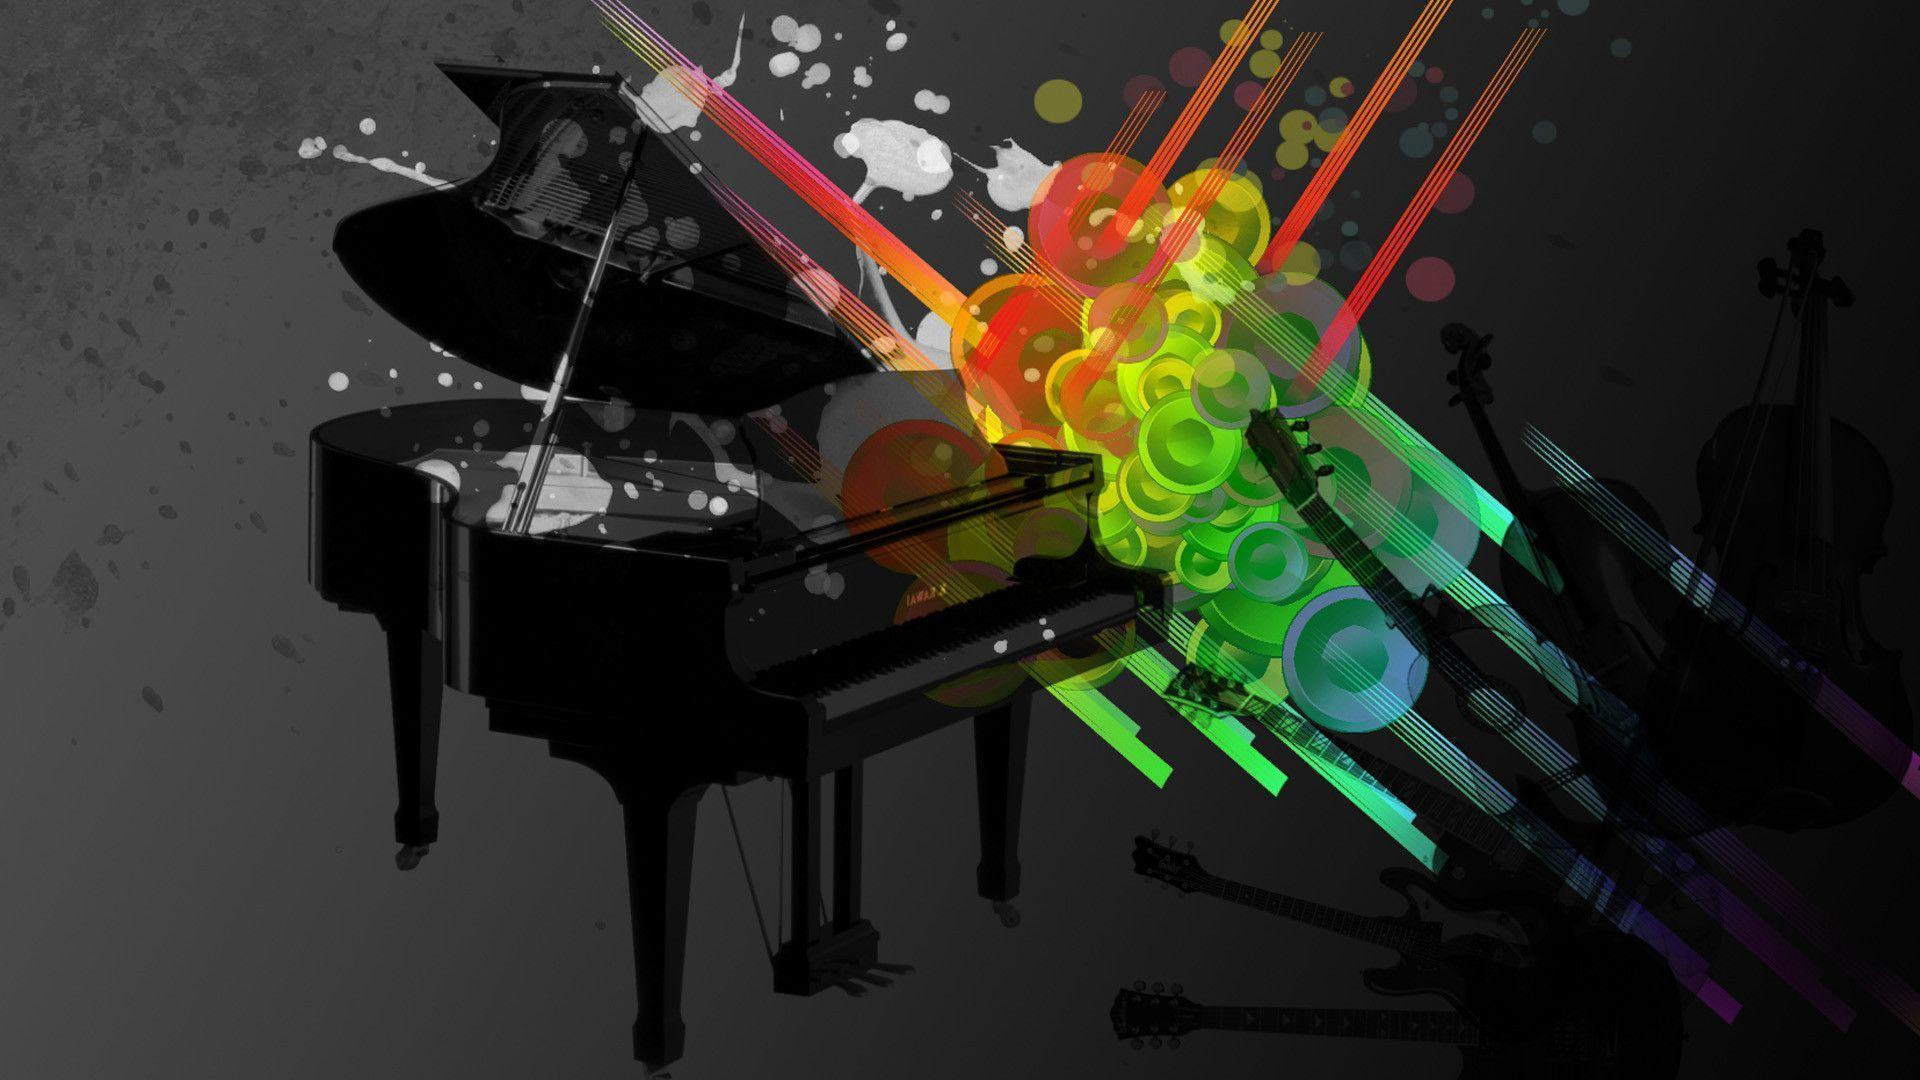 abstract piano art wallpaper - photo #5